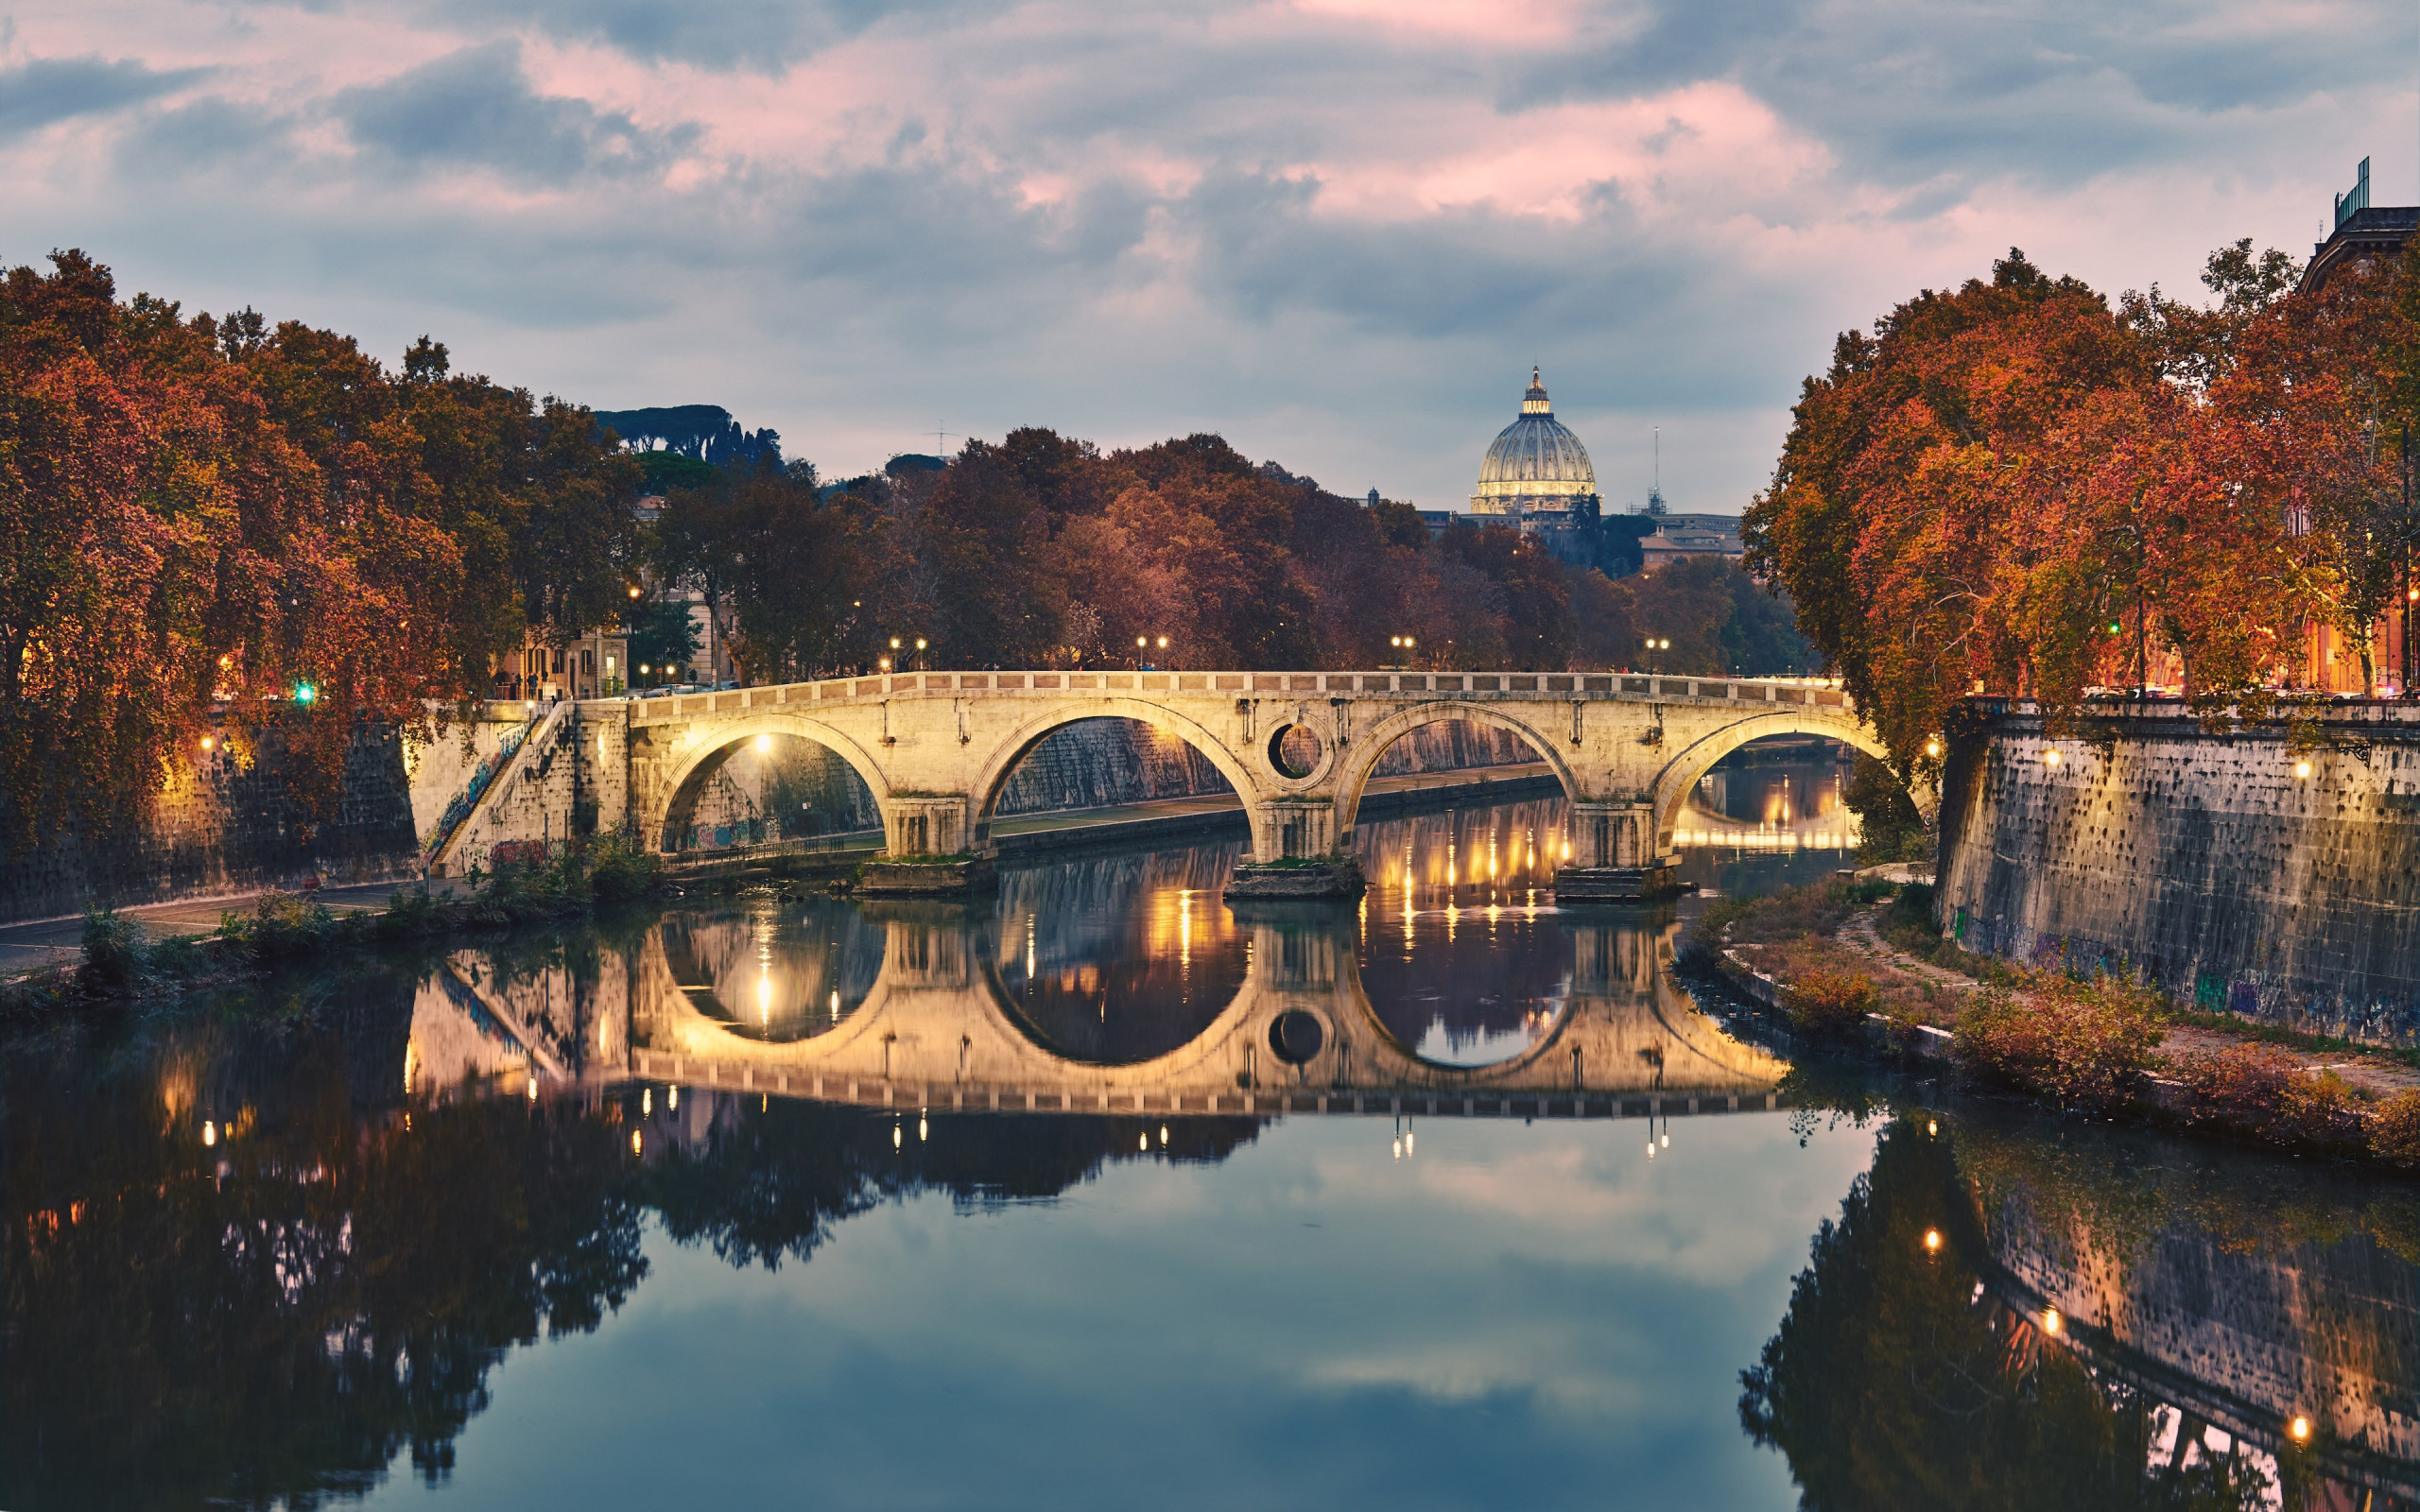 Ponte Sisto in Rome, Italy | 2560x1600 wallpaper